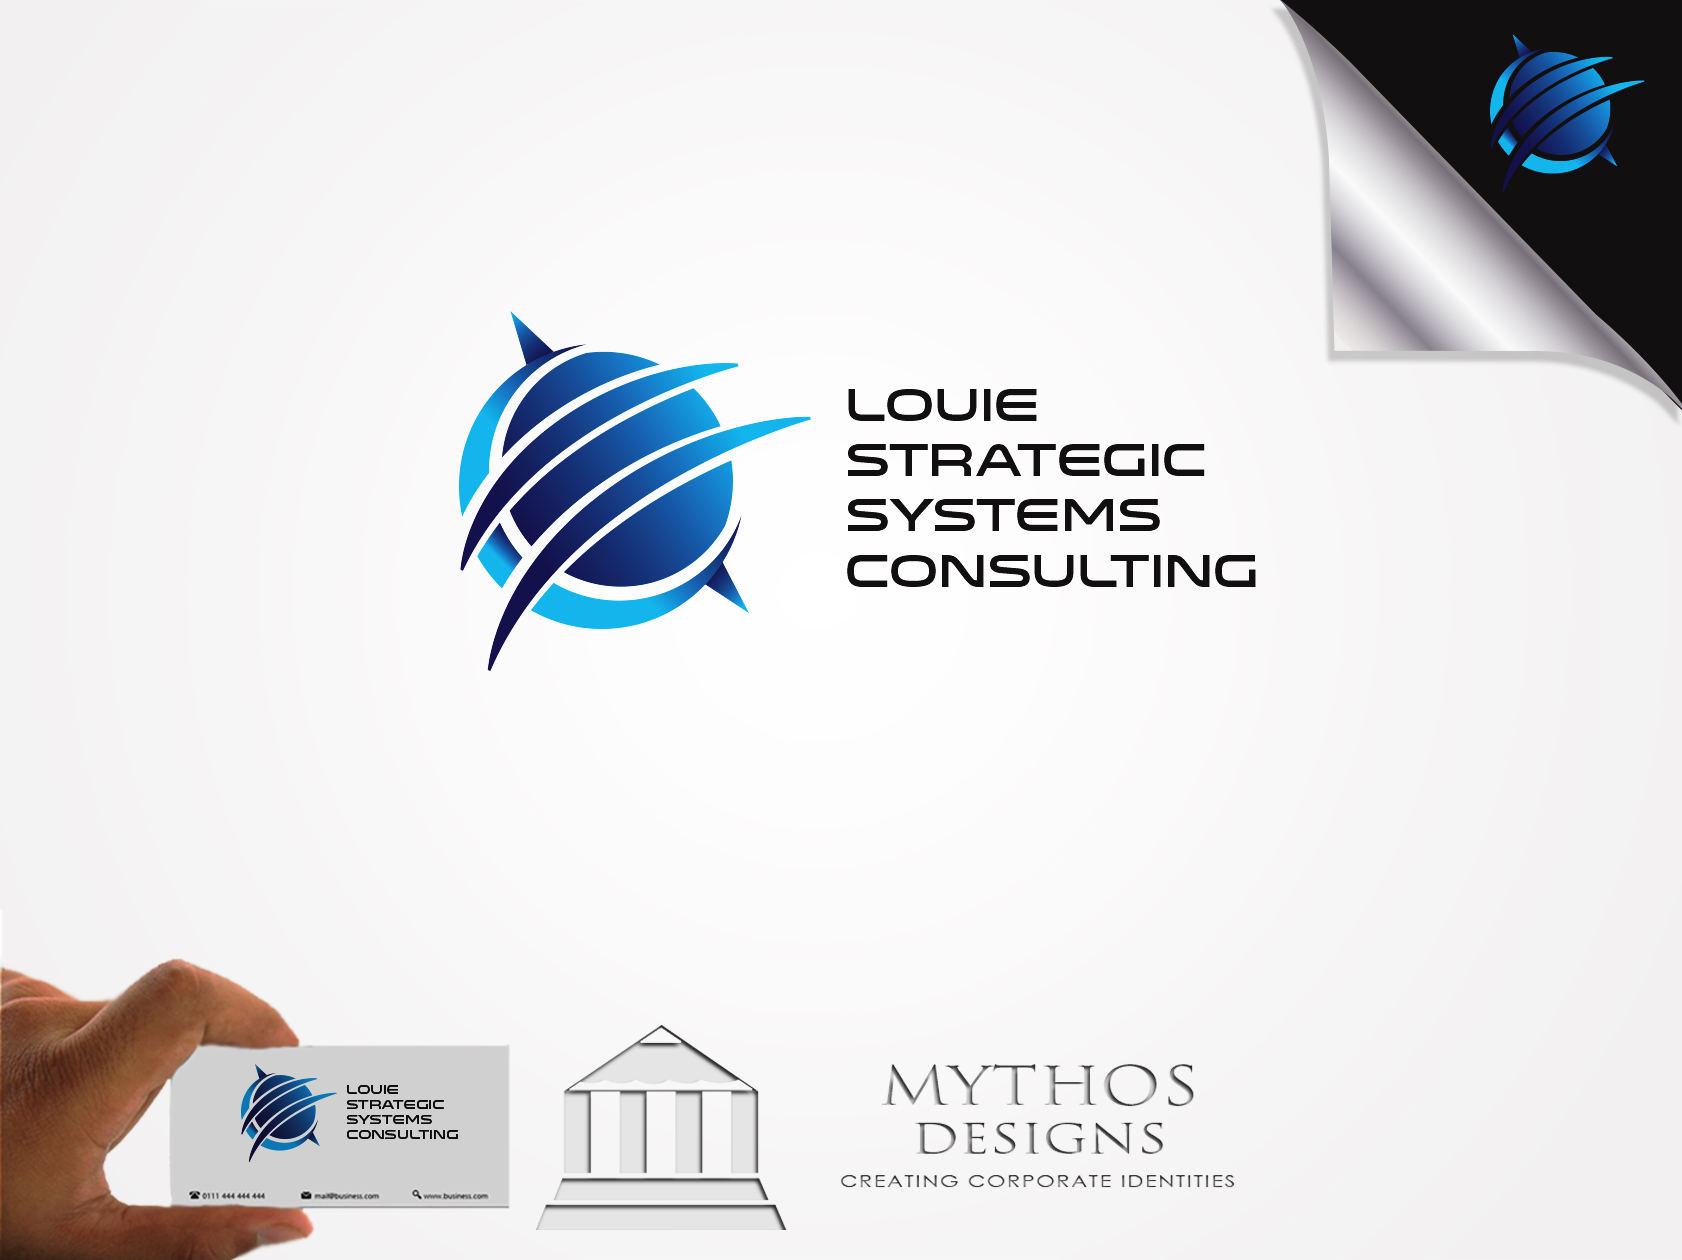 Logo Design by Mythos Designs - Entry No. 168 in the Logo Design Contest Artistic Logo Design for Louie Strategic Systems Consulting.